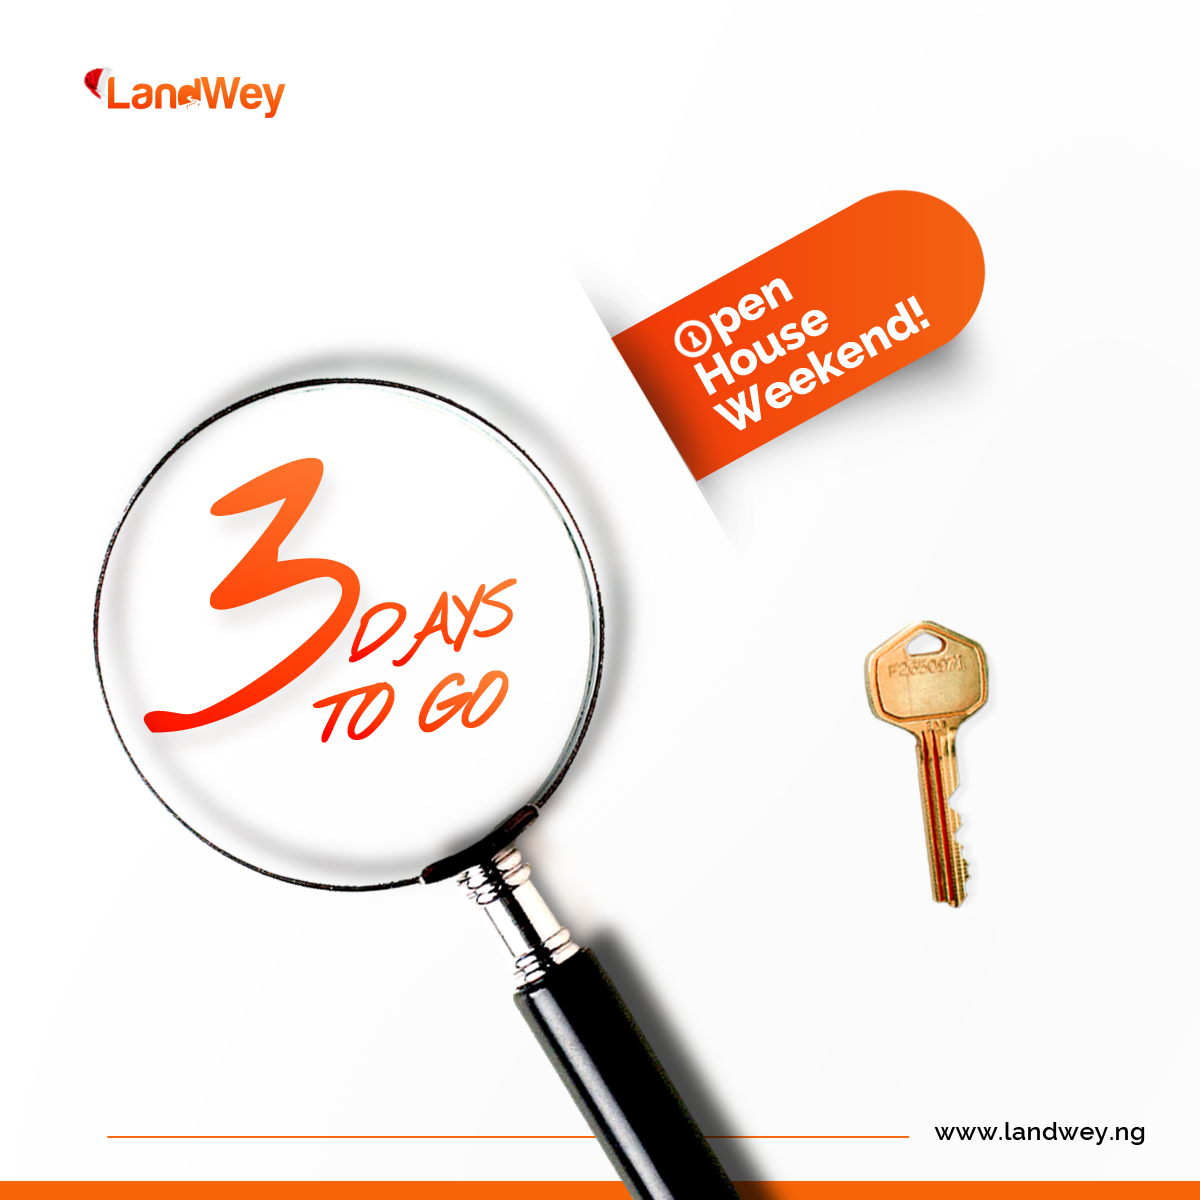 LandWey's Open House Weekend is here!!!